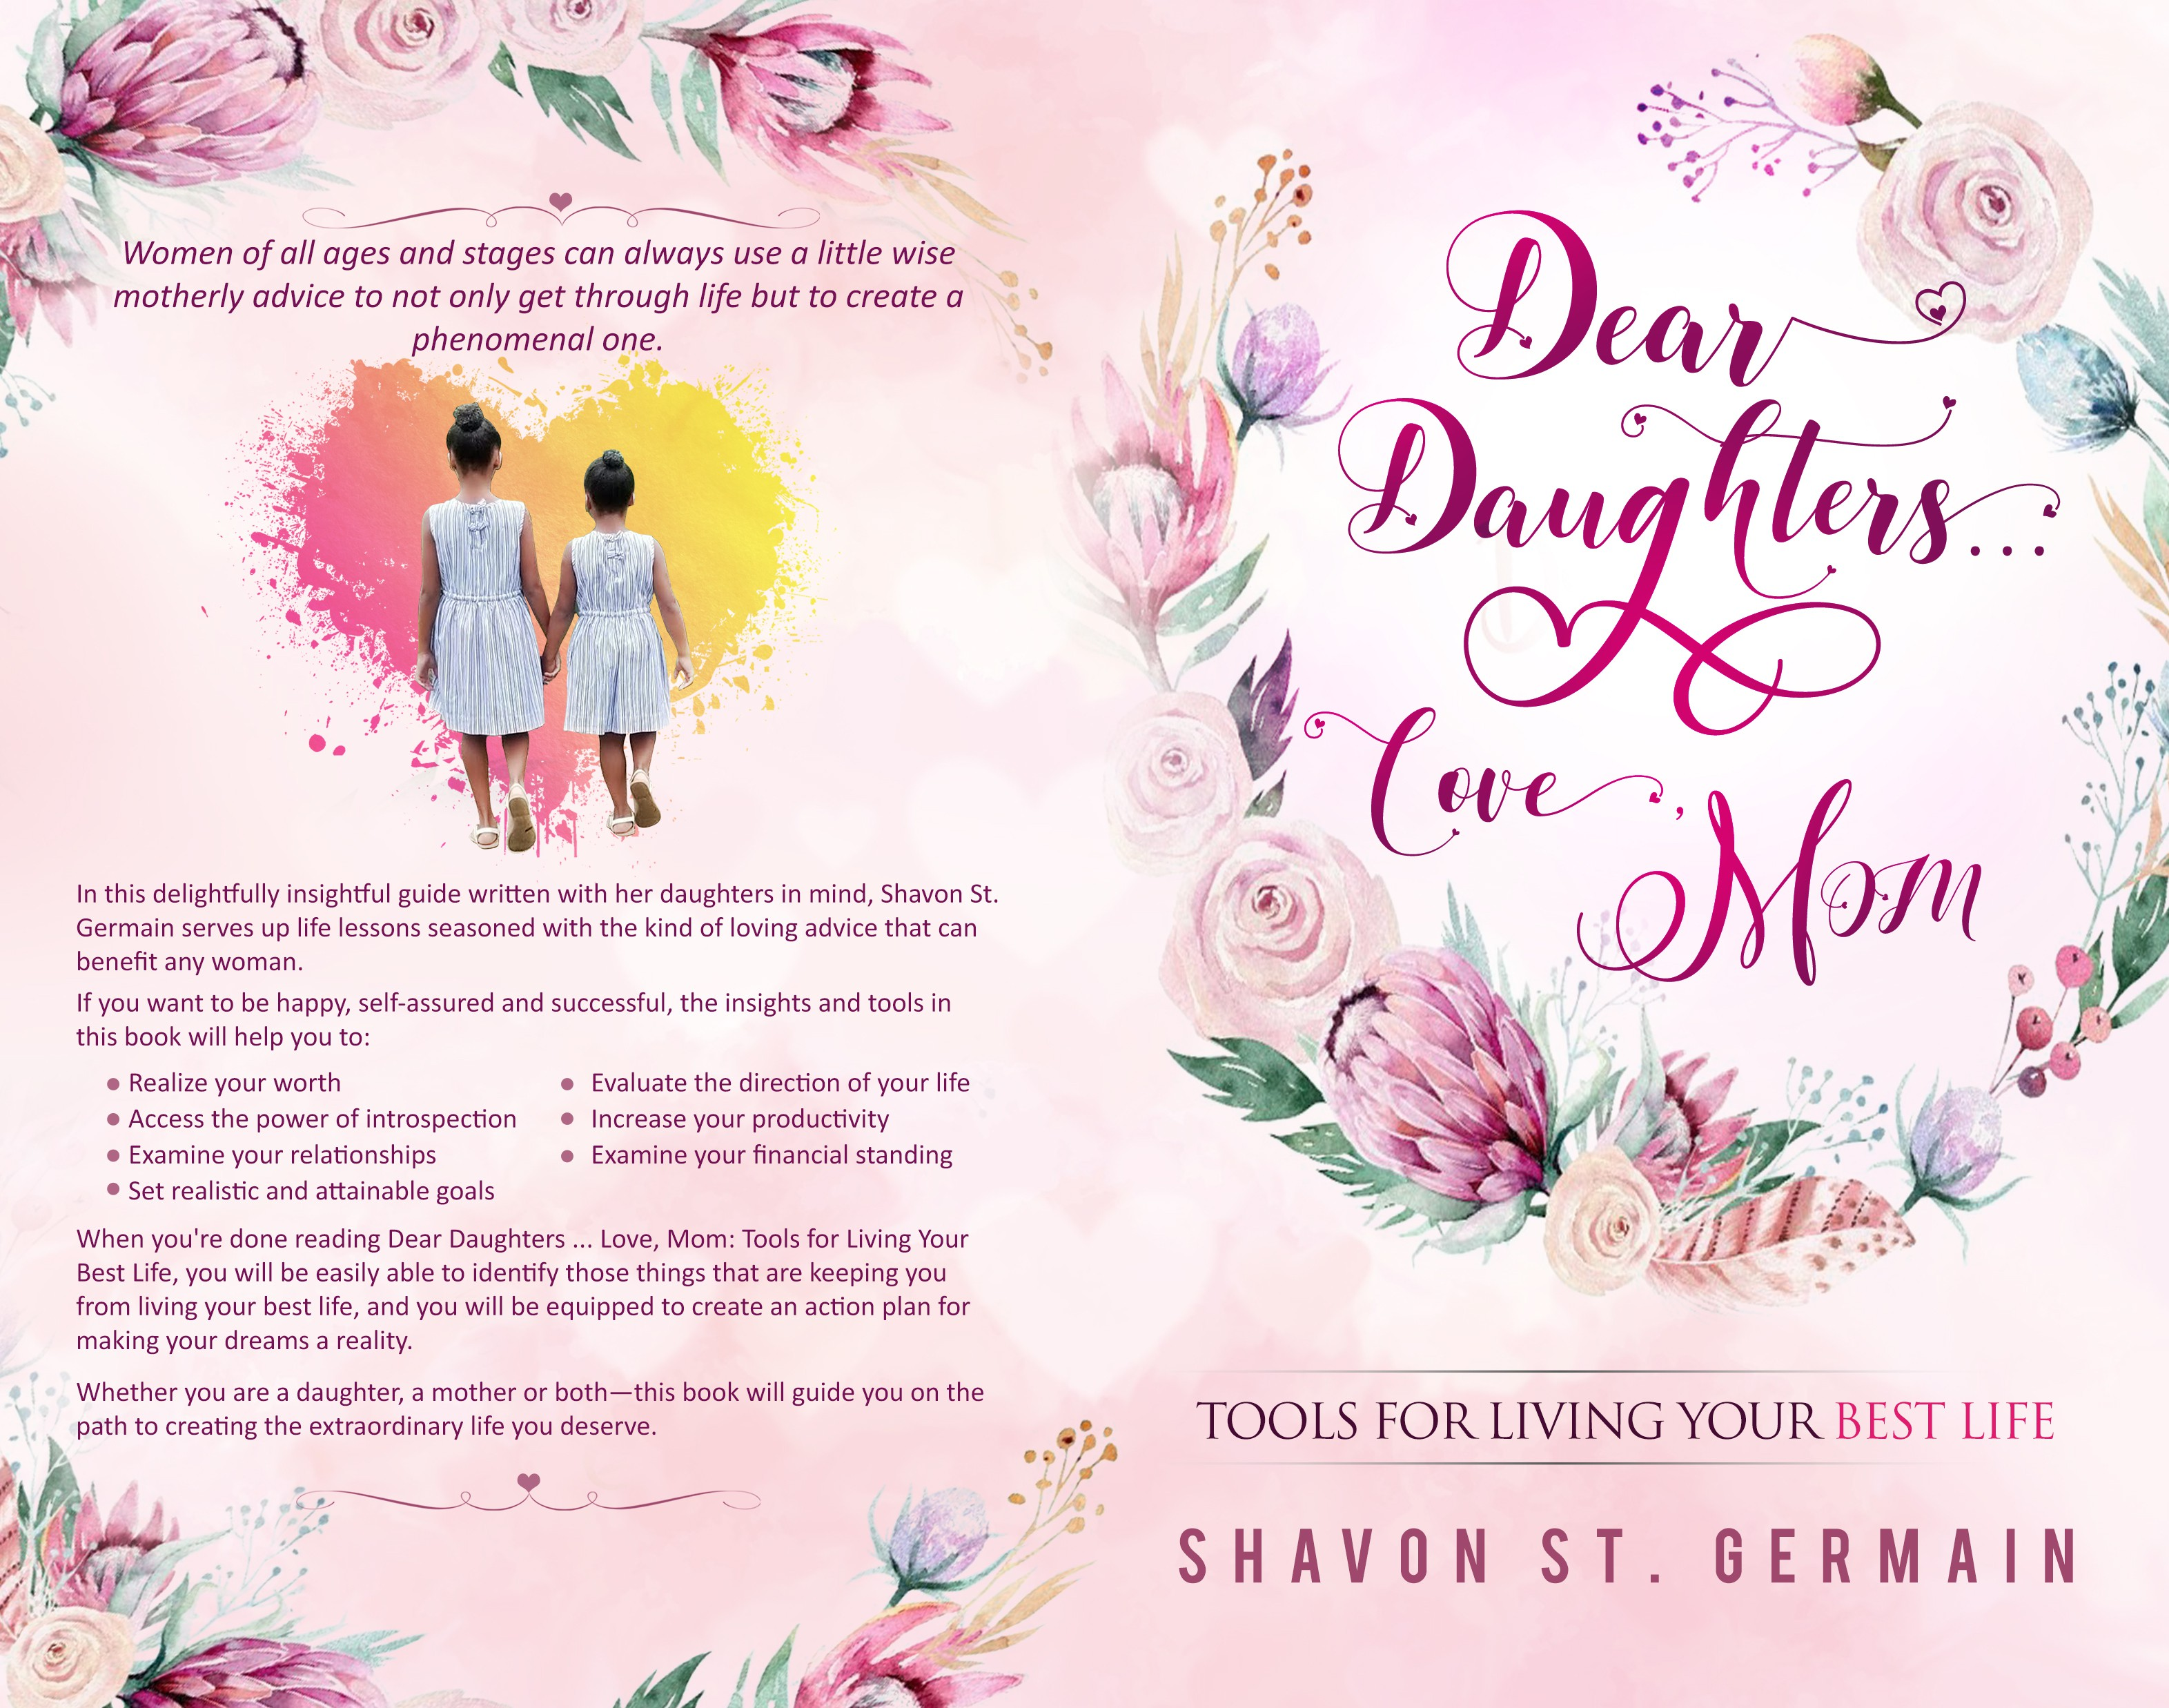 Design a book cover for a mother-to-daughter self-help book